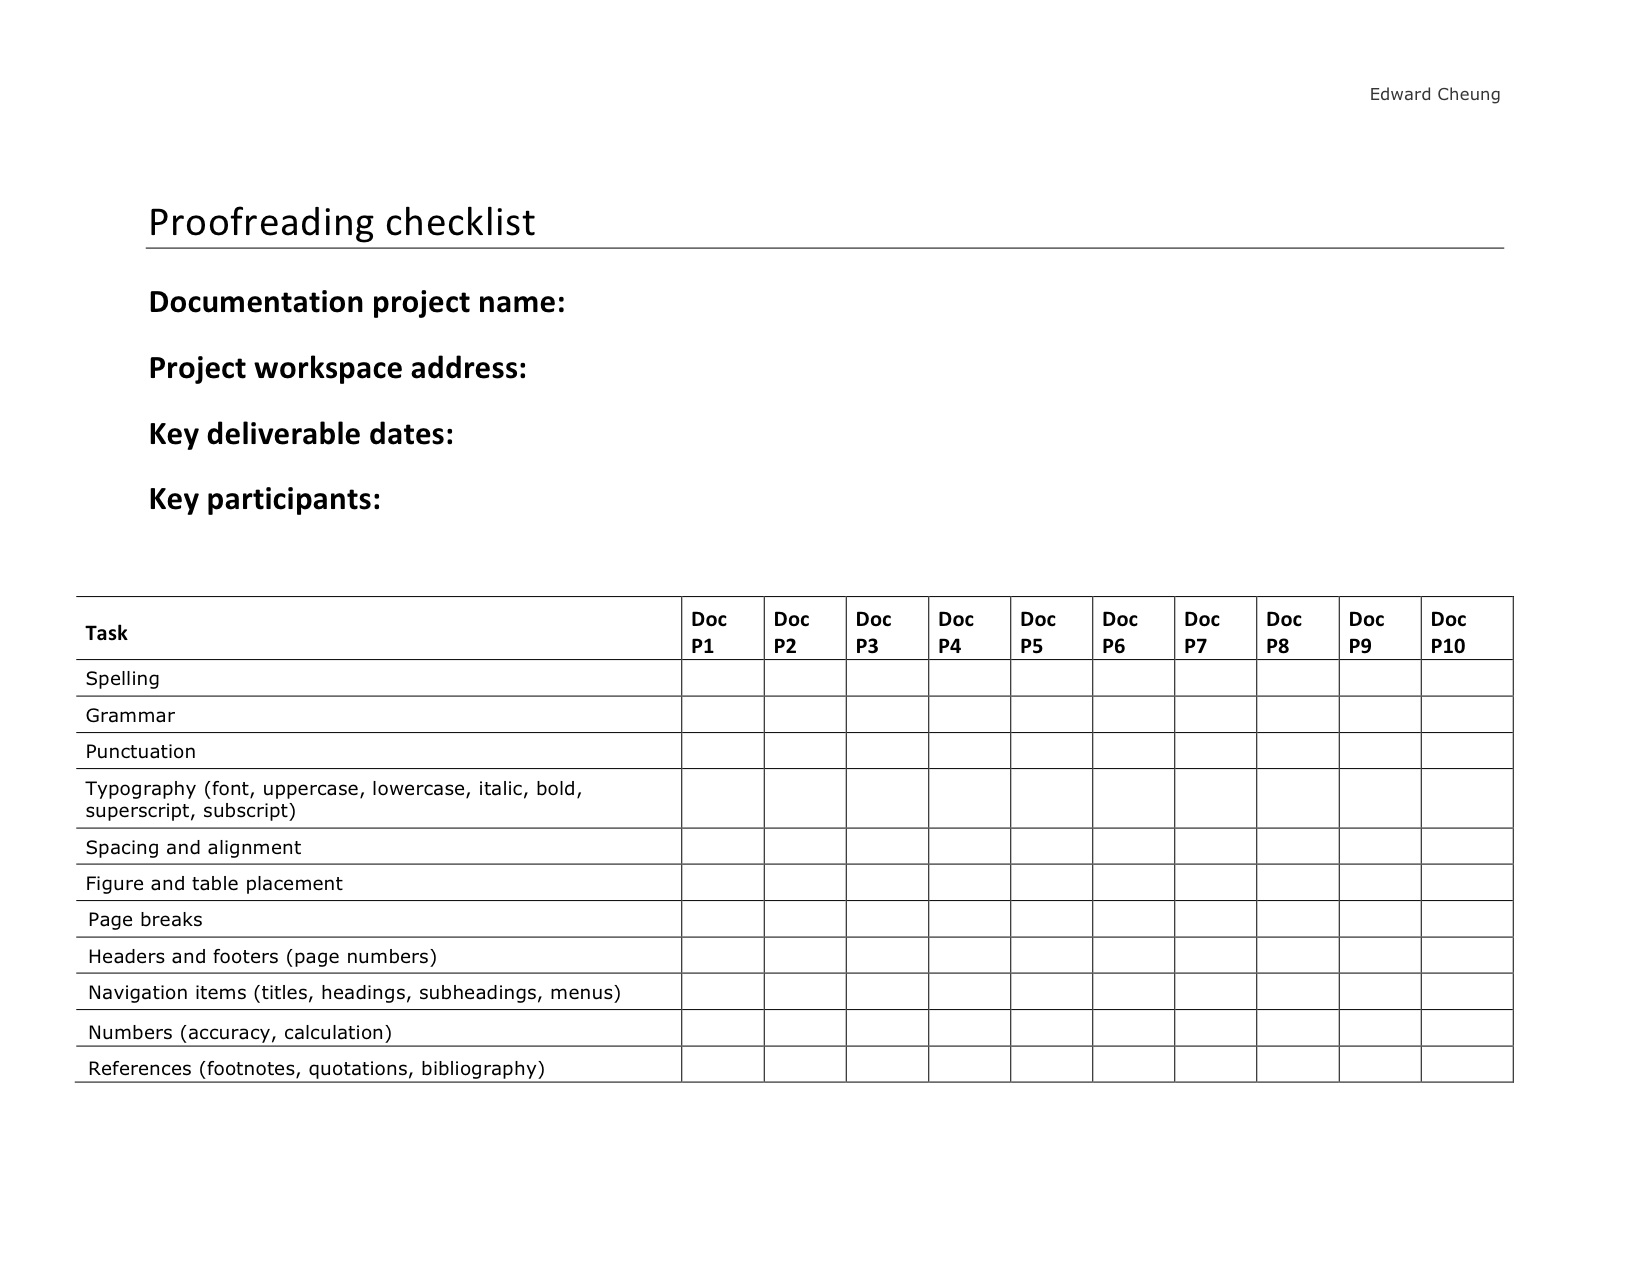 Technical Editing Checklists Edward Cheung's Portfolio